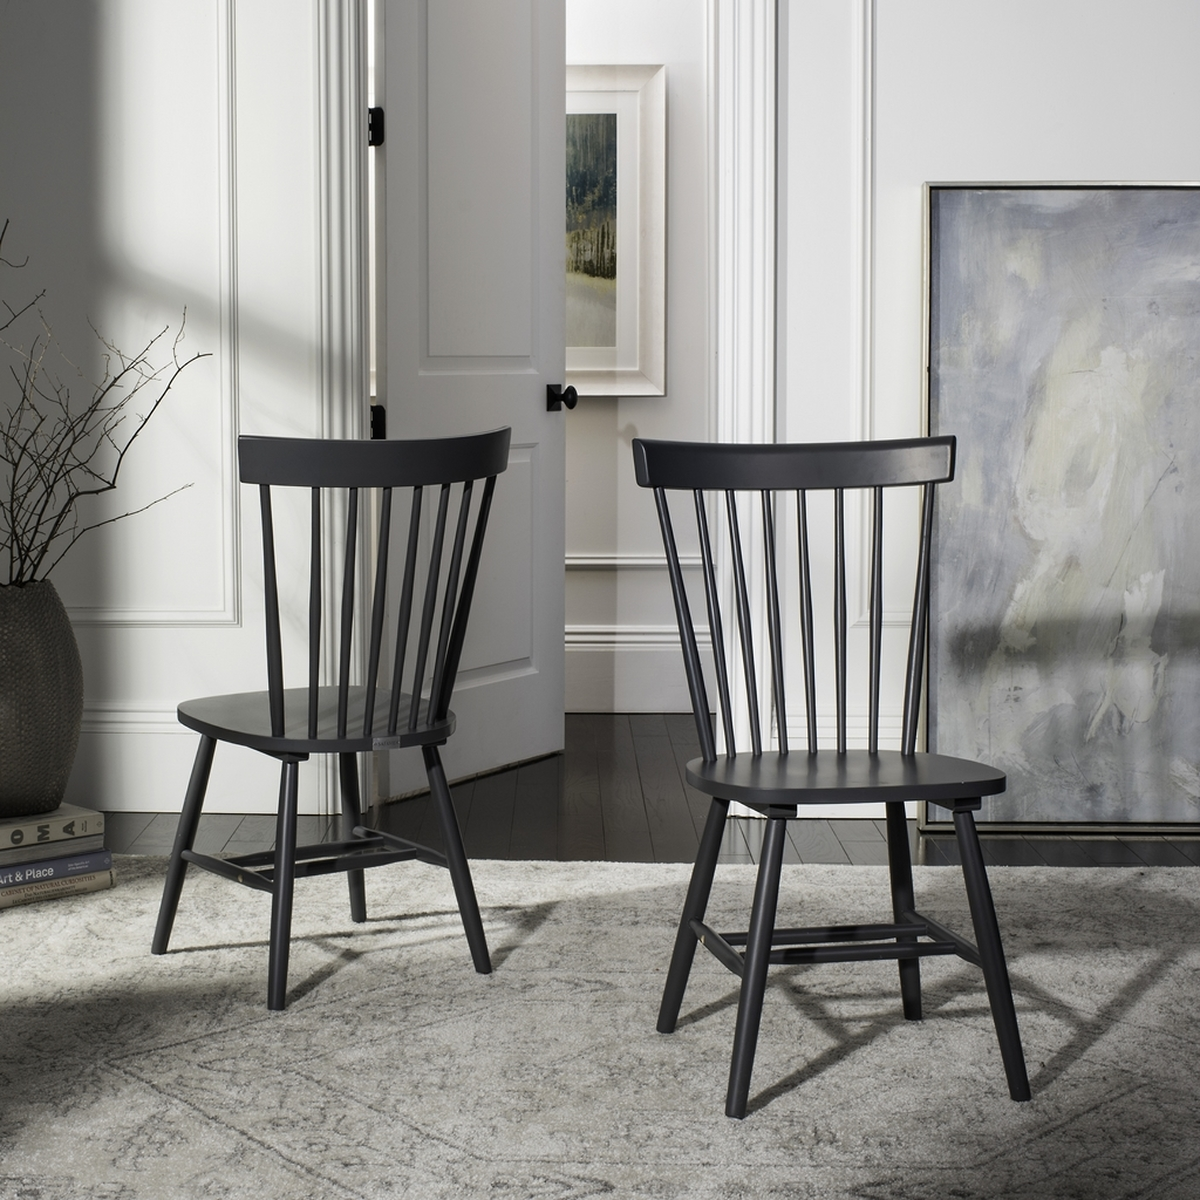 Set of 2 Safavieh Home Parker Navy Blue Spindle Dining Chair